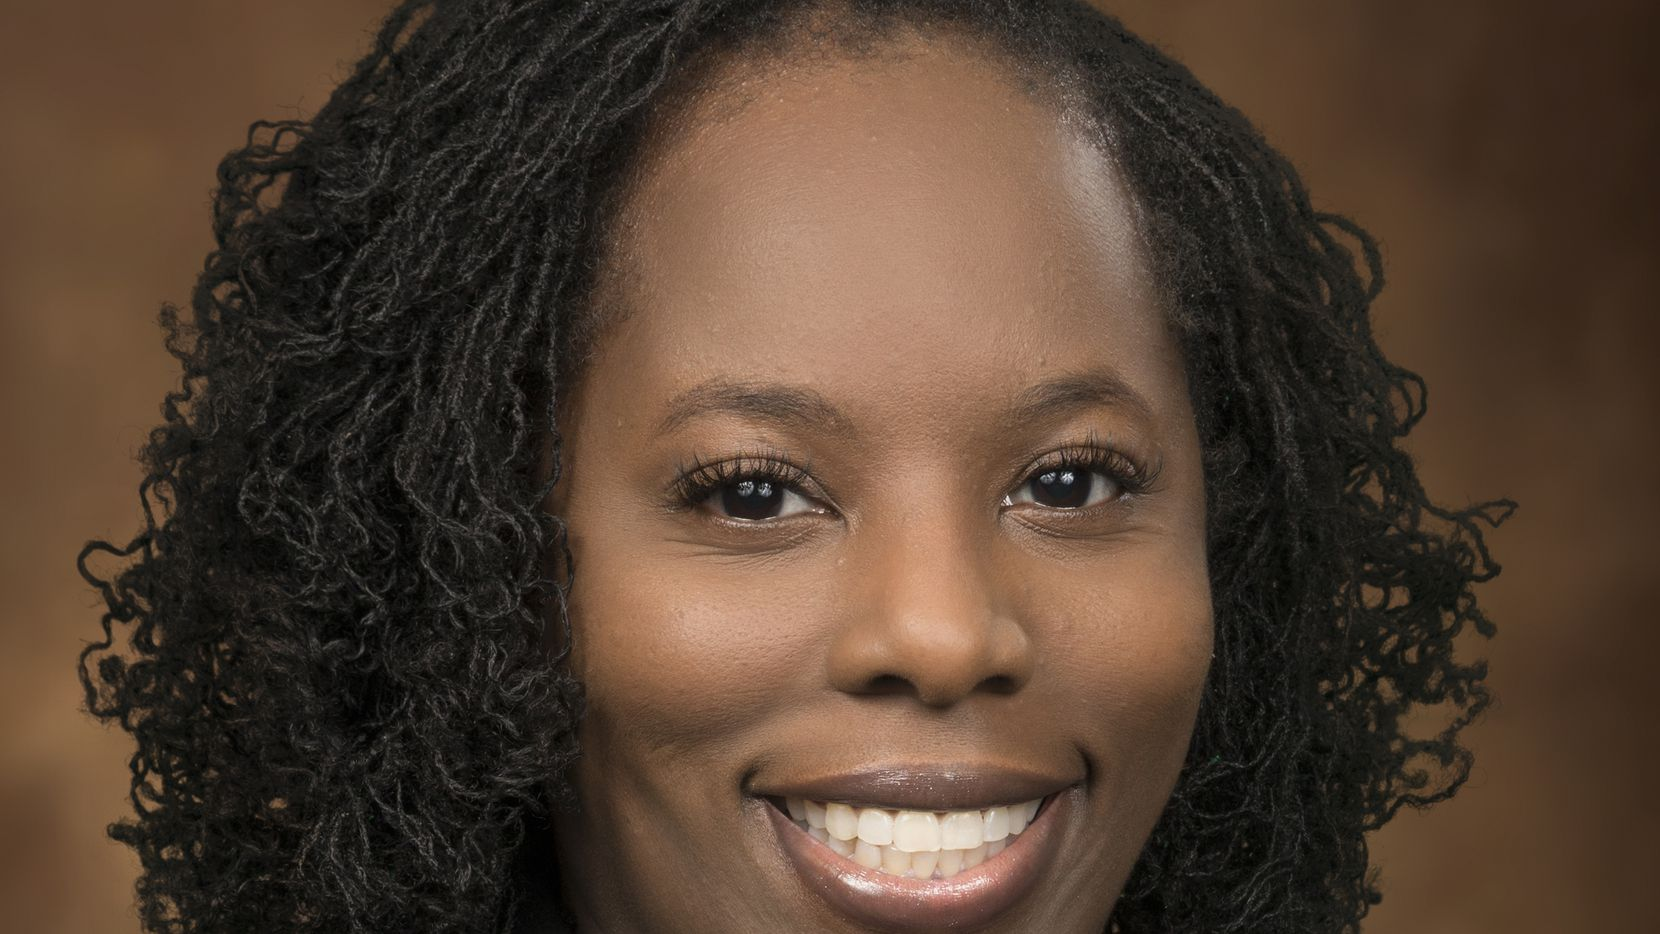 Ada Crenshaw is the membership director of the Collin County Black Chamber of Commerce and the President of the International Association of Women's Dallas chapter.